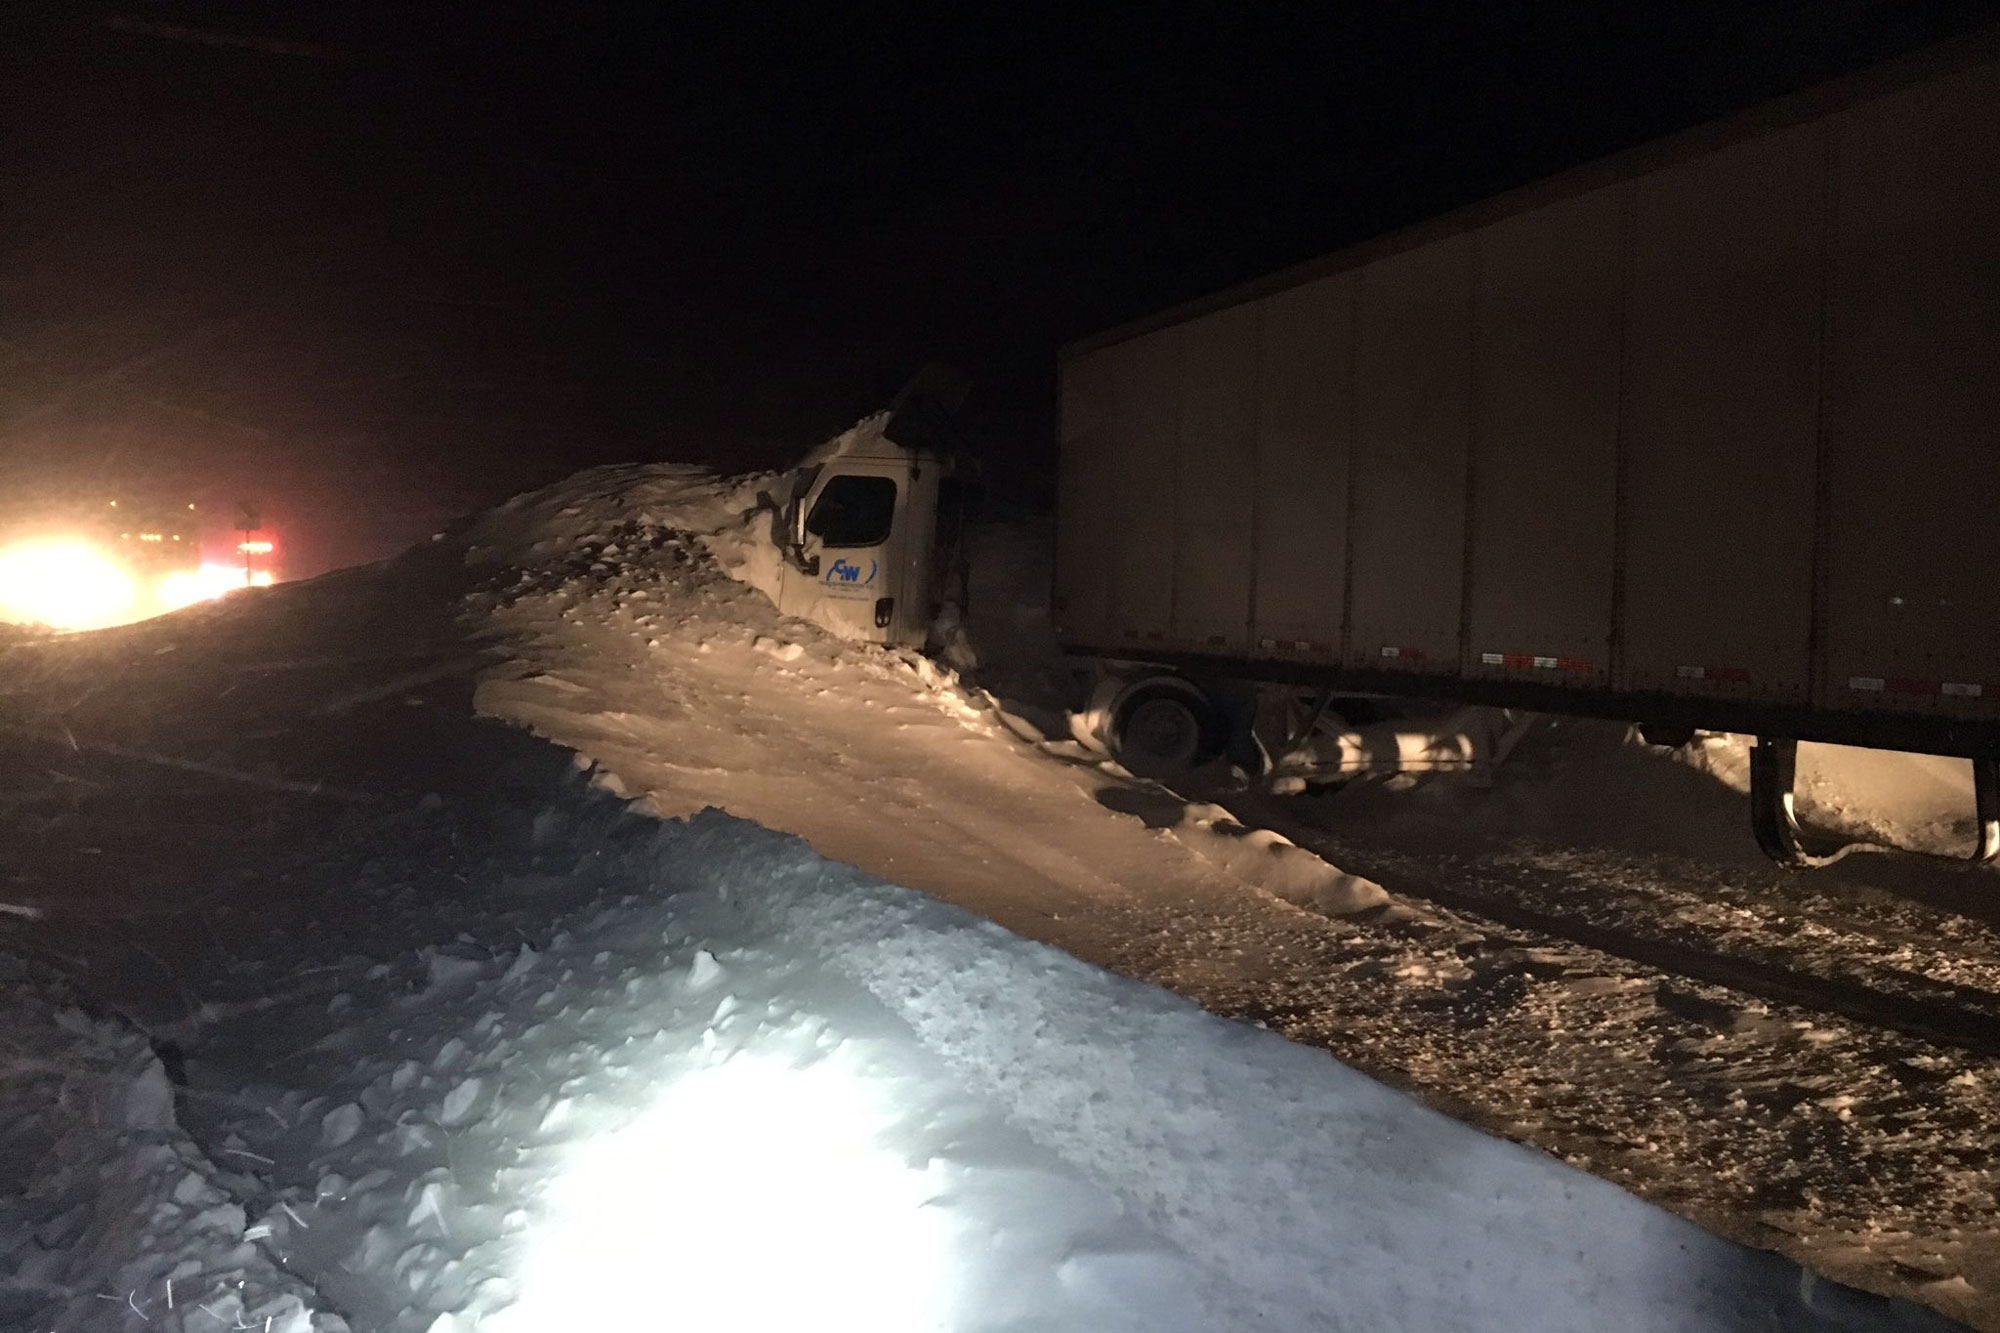 <p>A daycabsemi truck buried in a snow drift on Vail Pass, Jan. 10, 2017.</p>